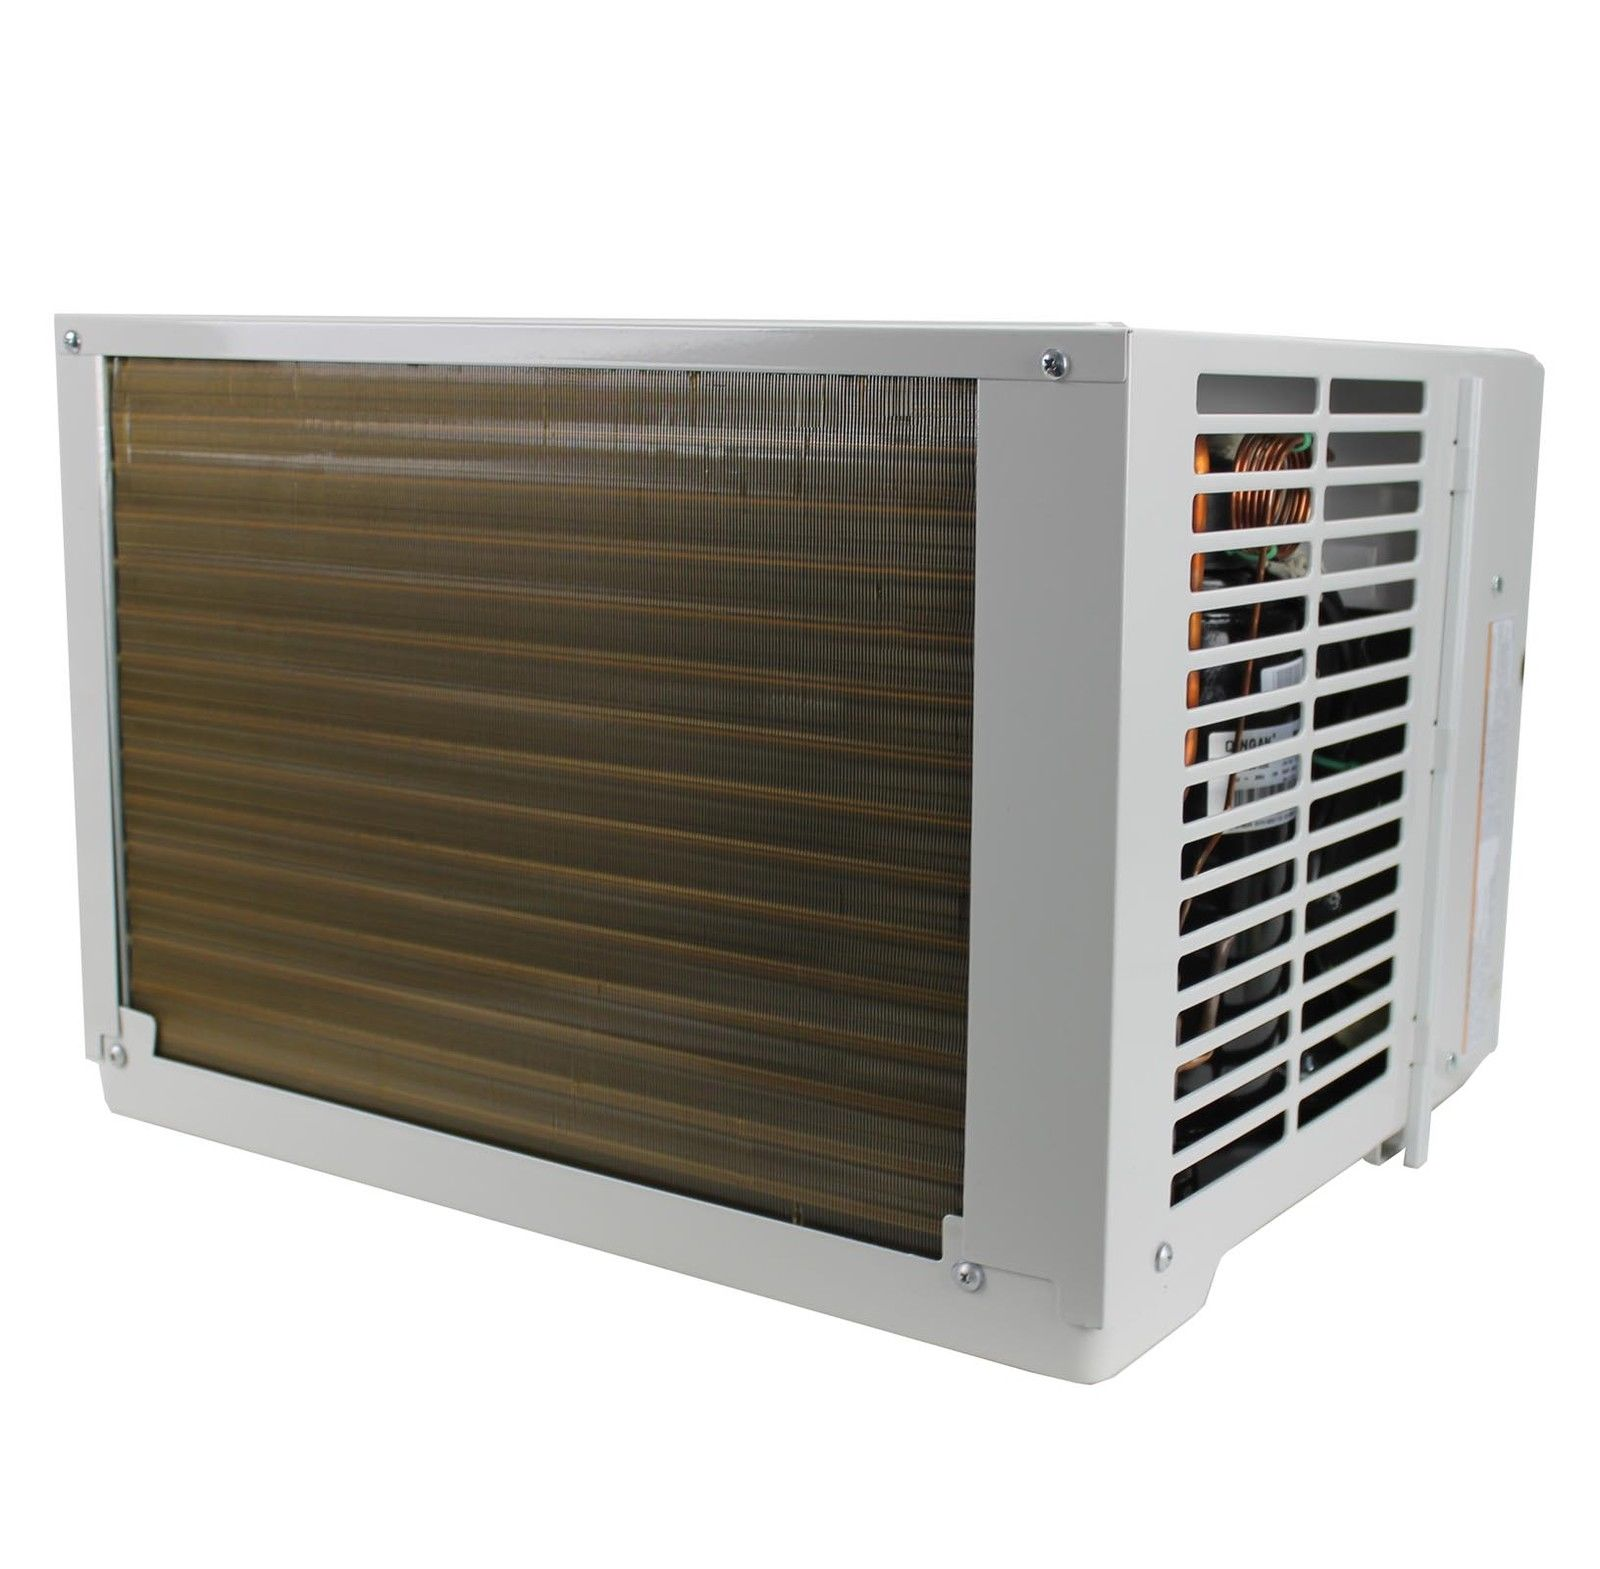 Cool Living CL-WAC-15 Electronic Window Air Conditioner 15.000 Btu 115v at Sutherlands